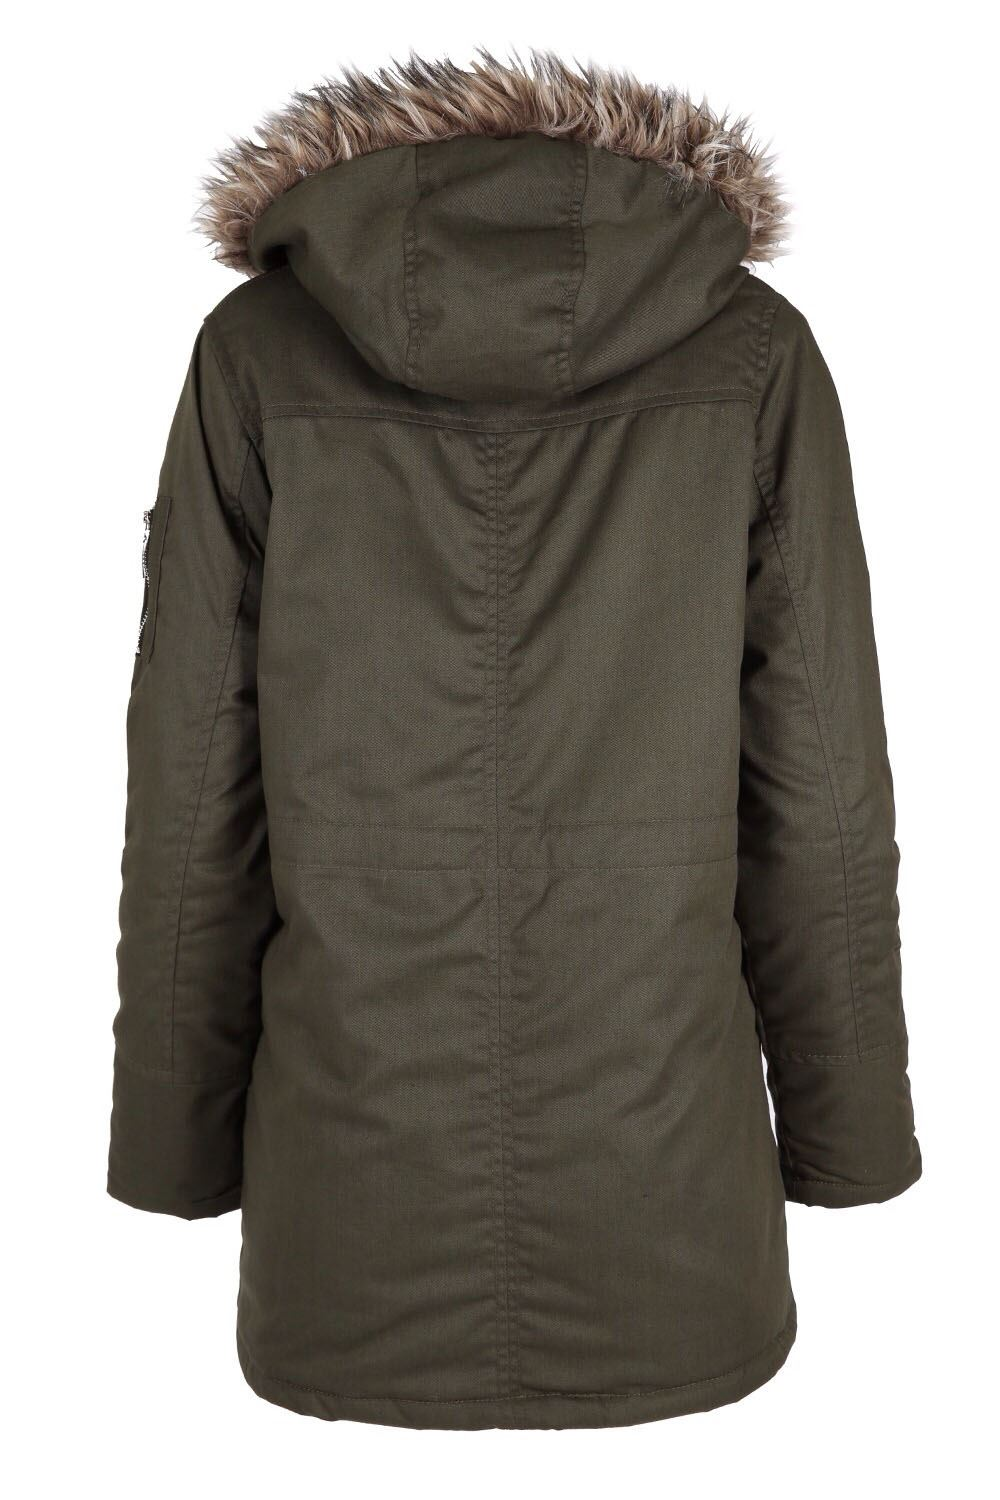 Womens Ladies Faux Fur Hooded Winter Military Coat Parka ...